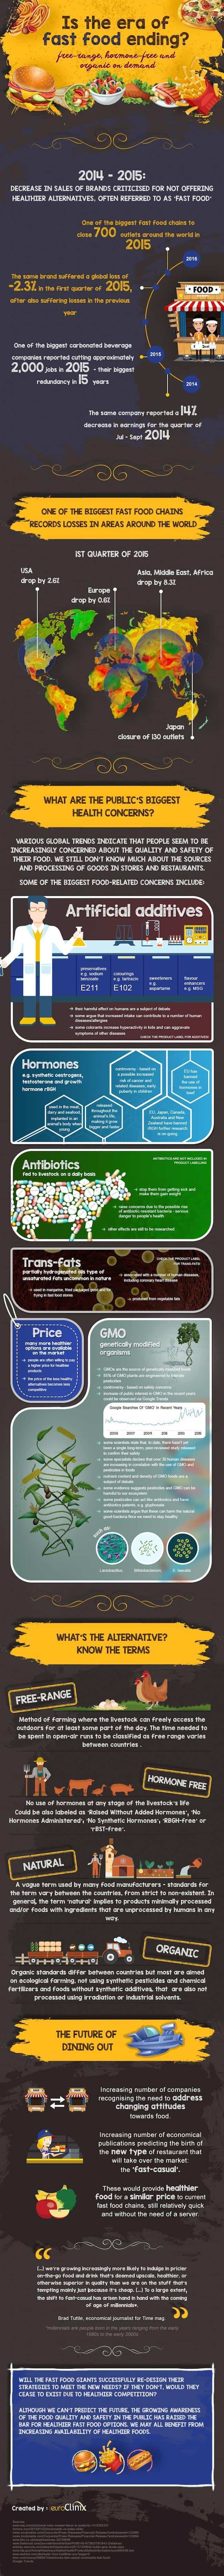 Is The Era Of Fast Food Ending Infographic